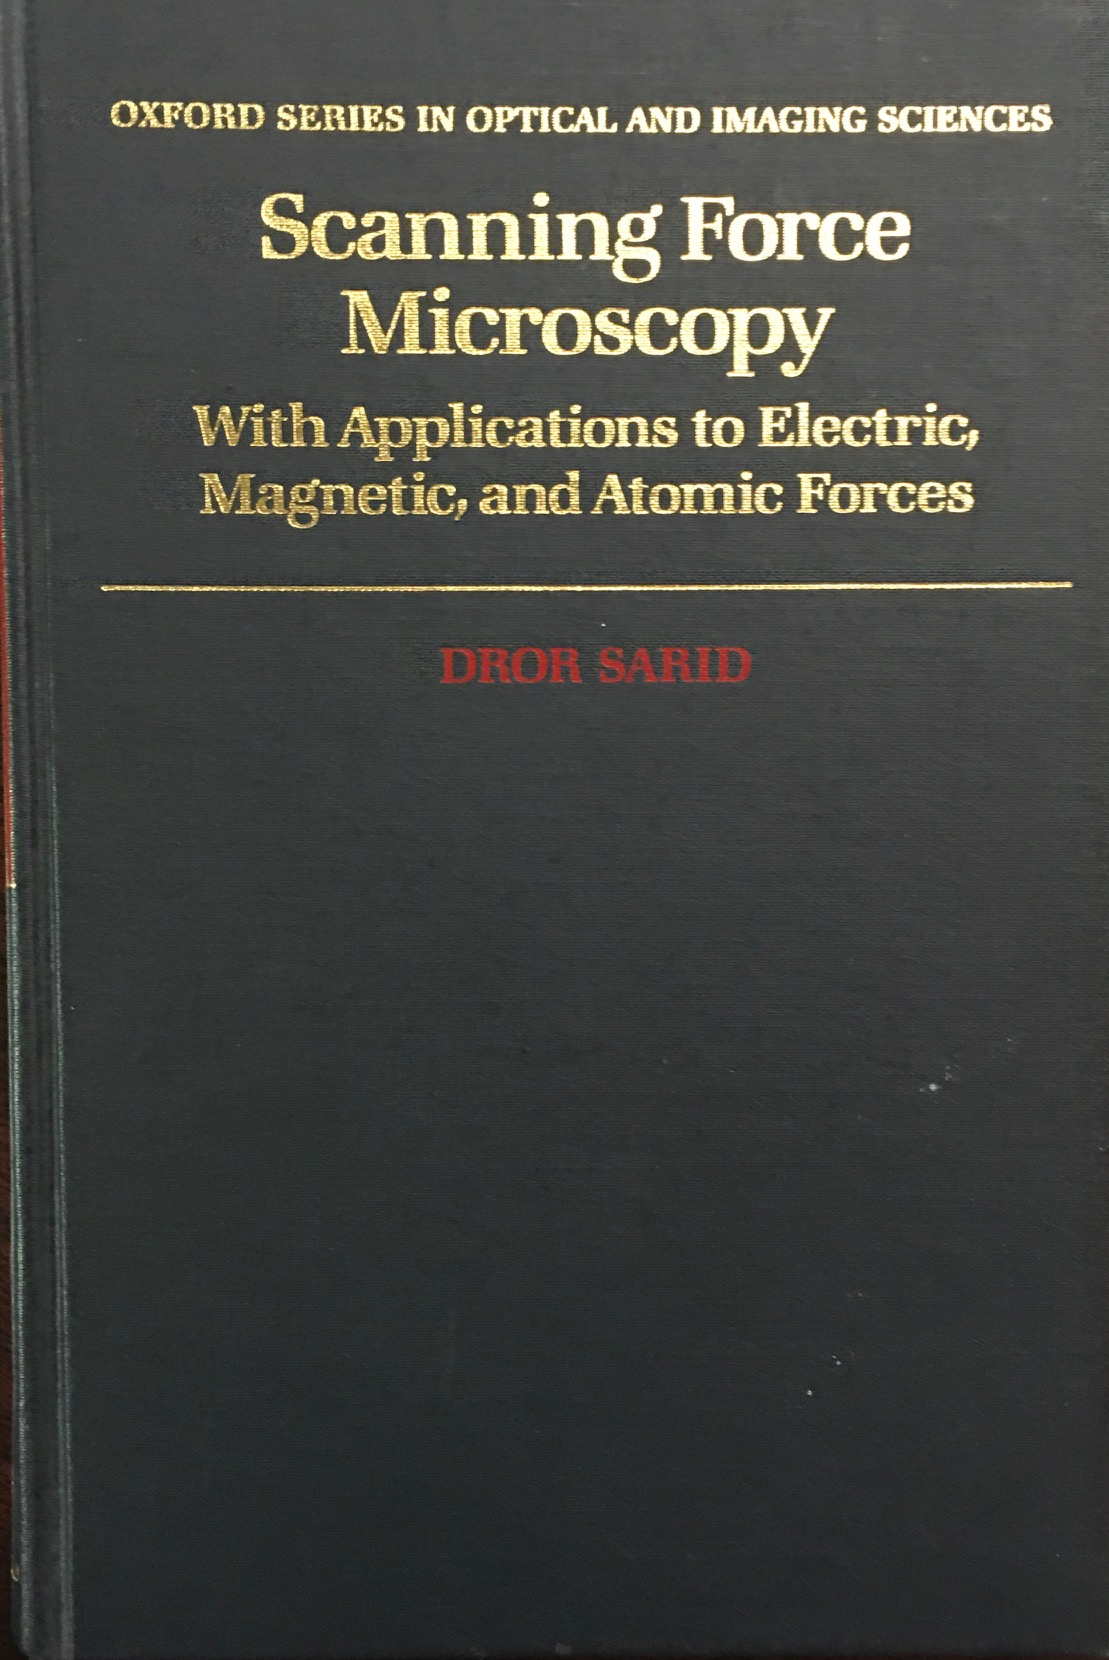 Image for Scanning Force Microscopy: With Applications to Electric, Magnetic, and Atomic Forces (Oxford Series in Optical and Imaging Sciences #2)